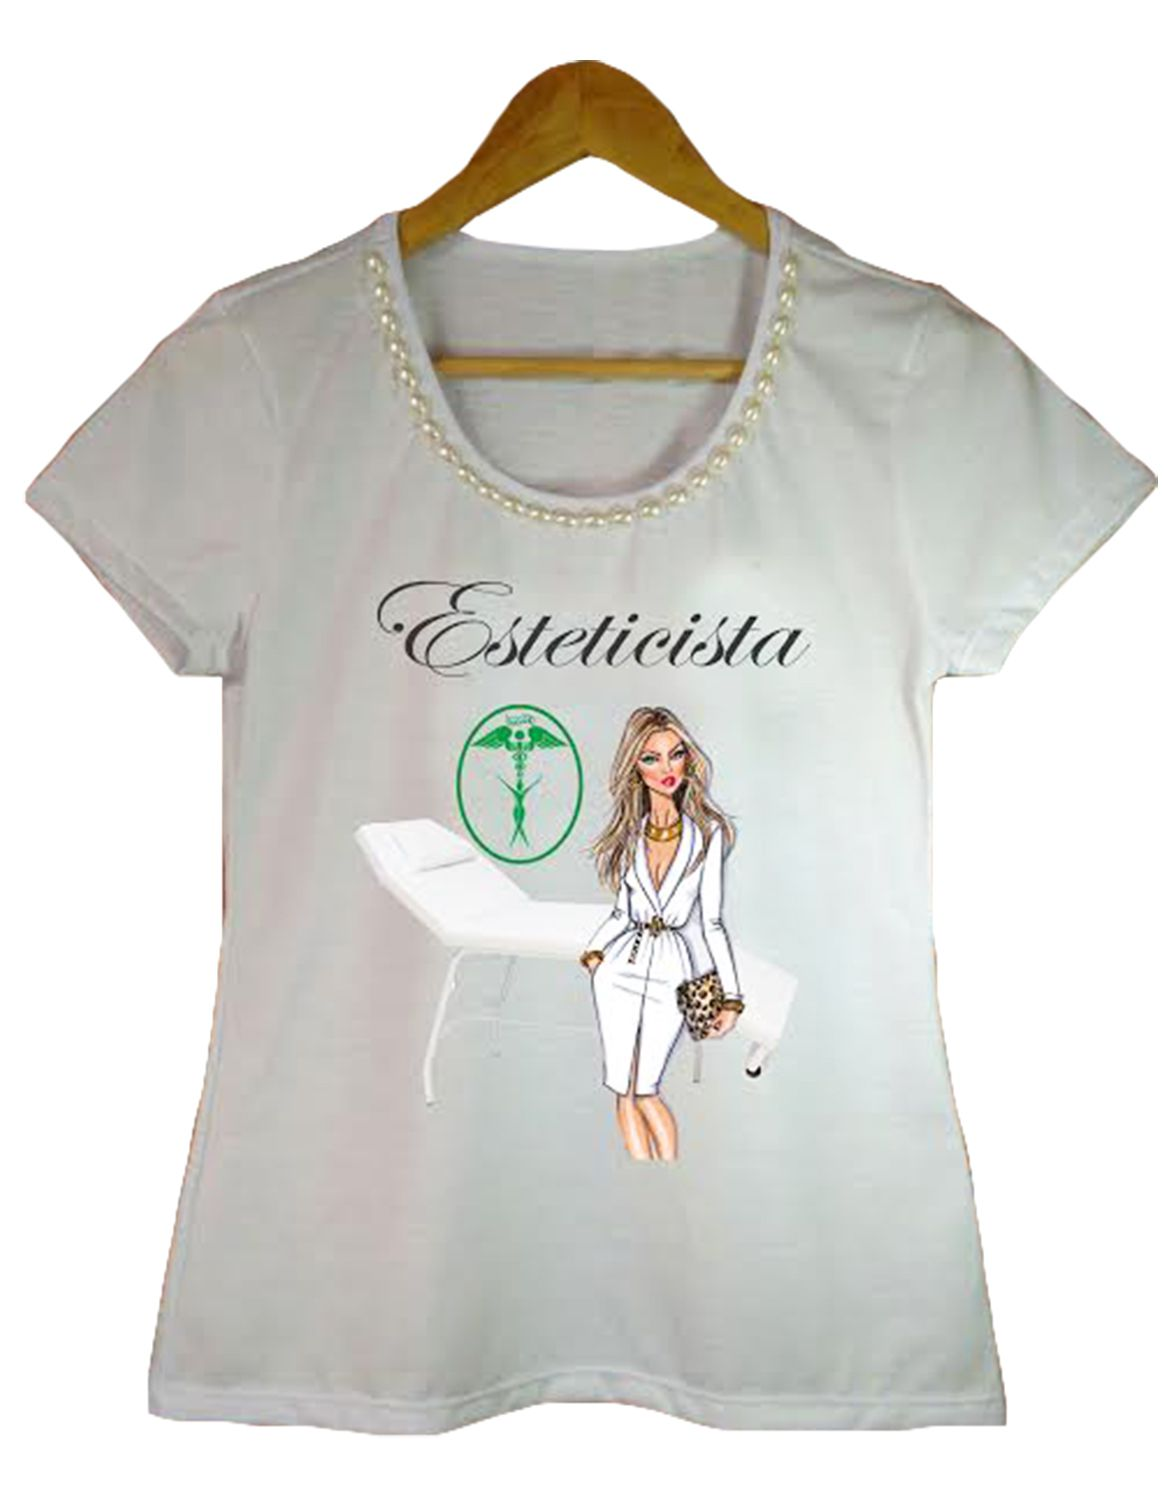 Camiseta t-shirt adulta feminina bordada esteticista